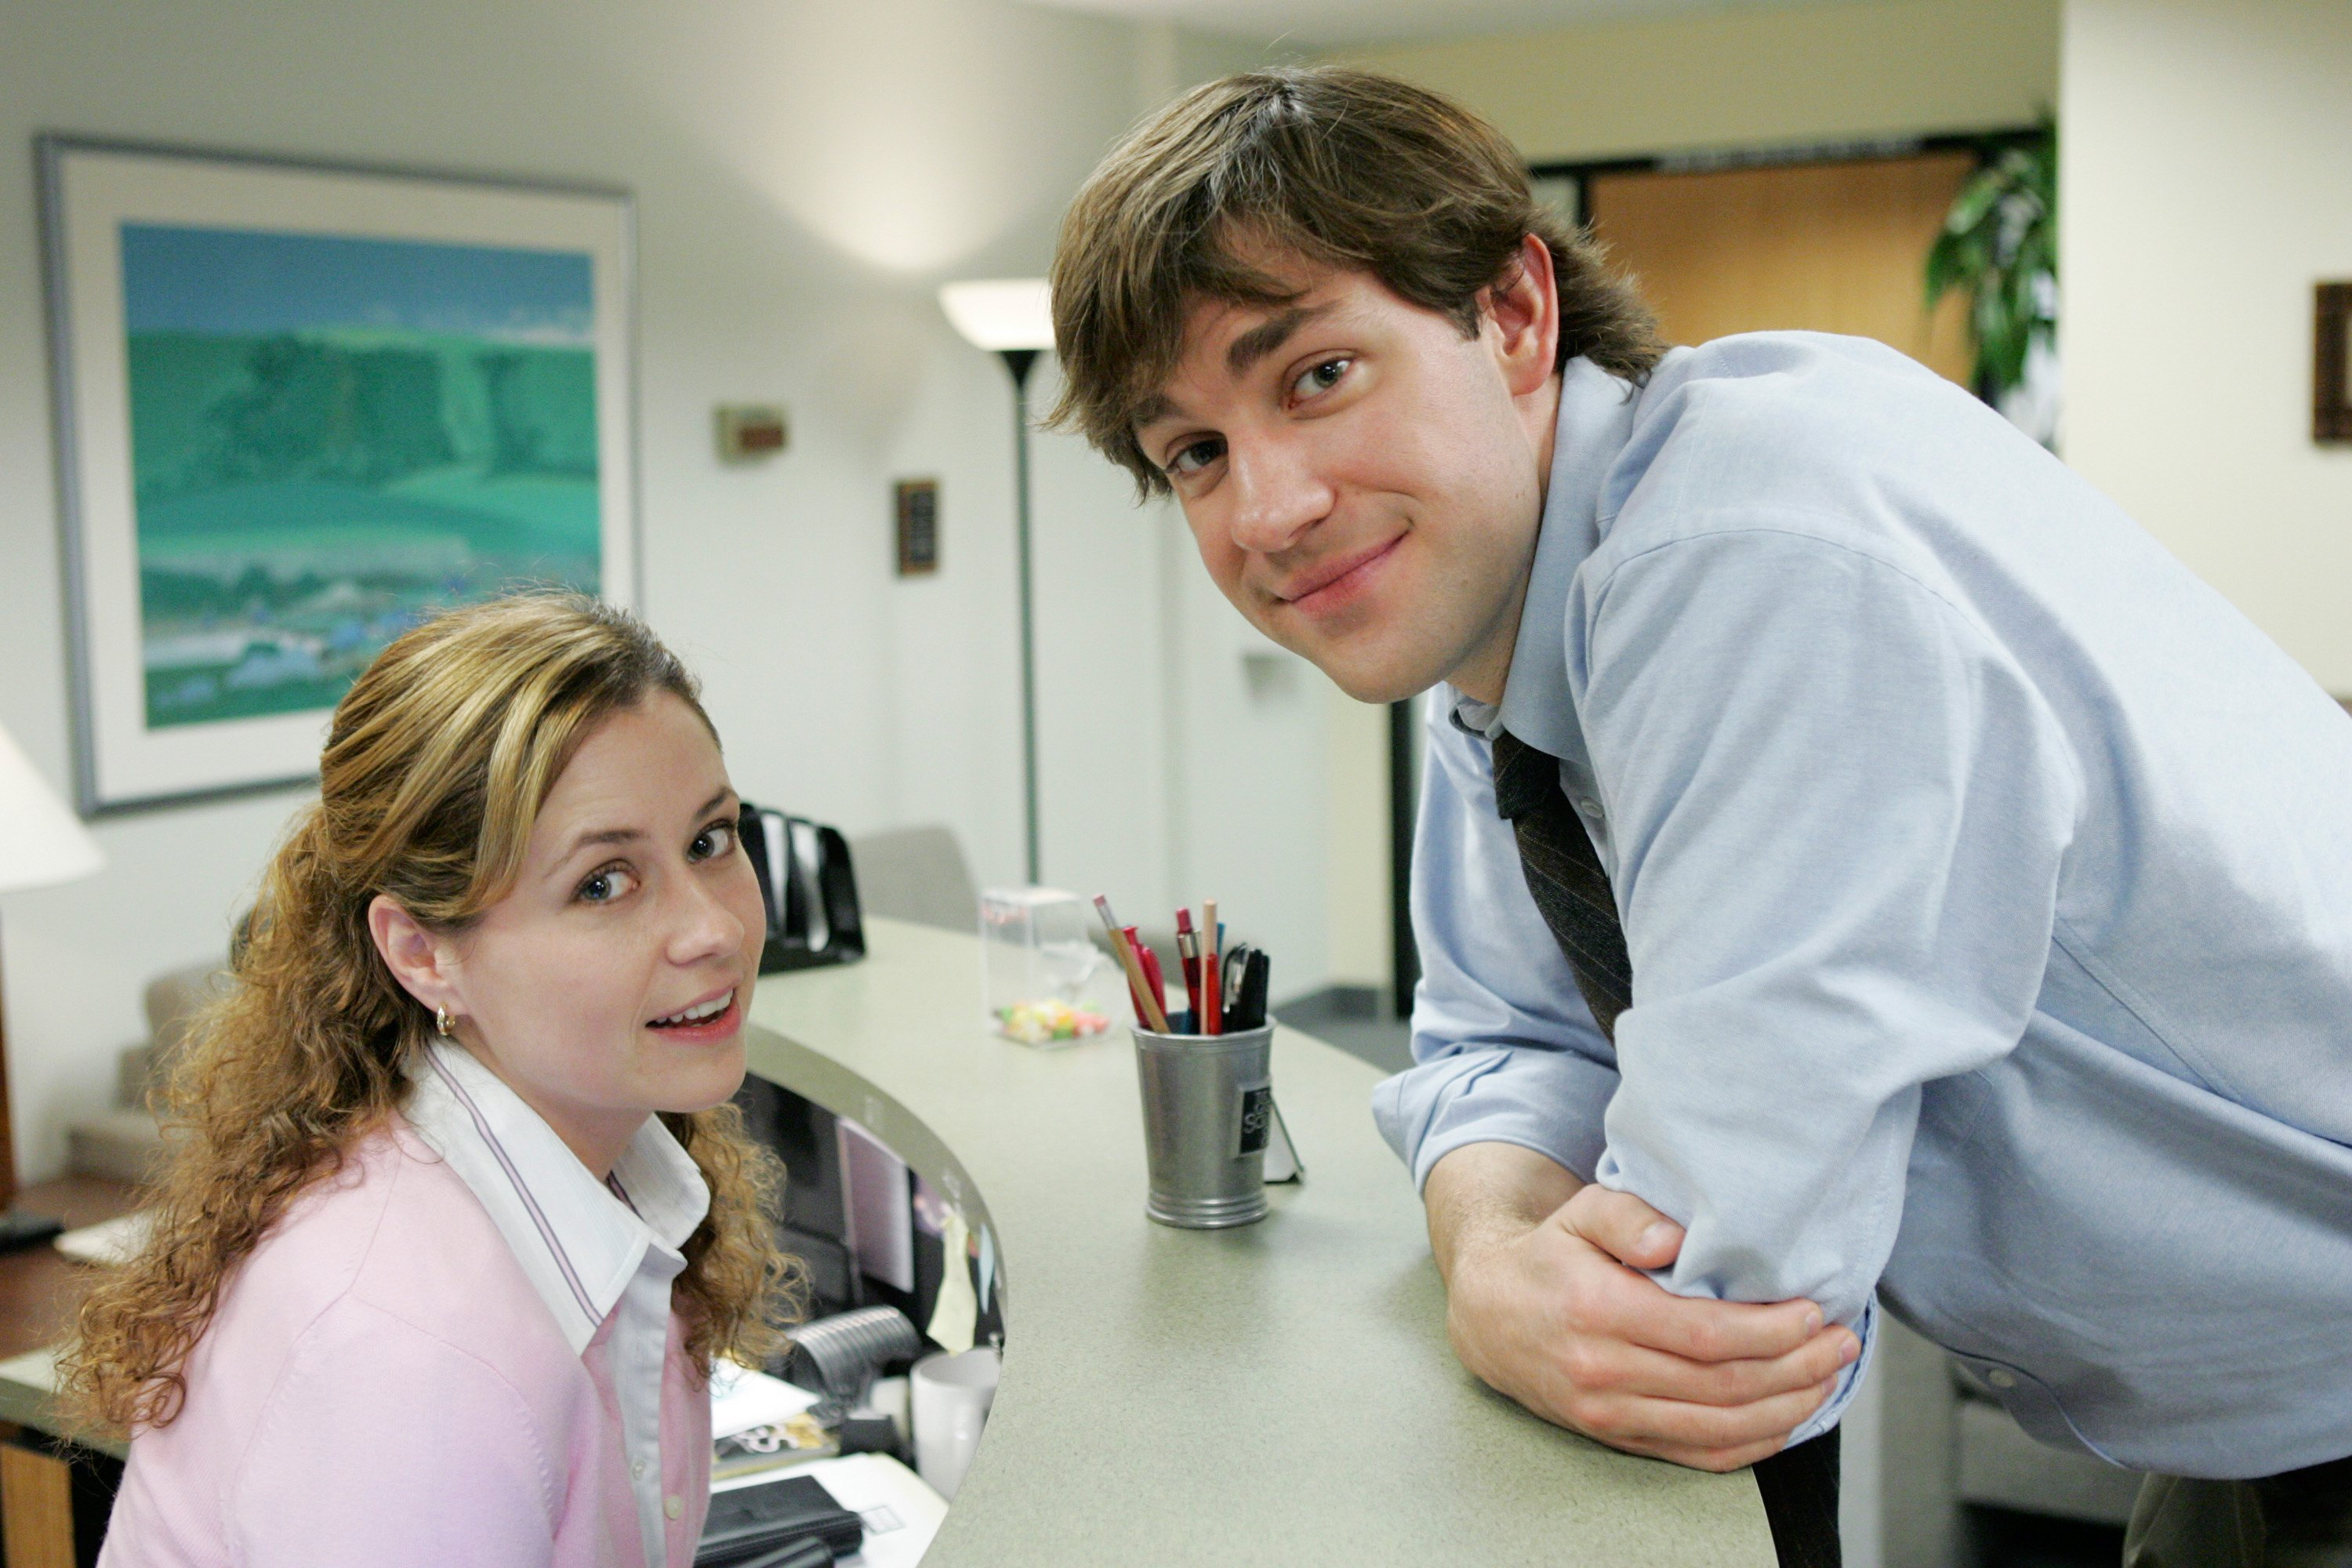 2. Jim and Pam on 'The Office'